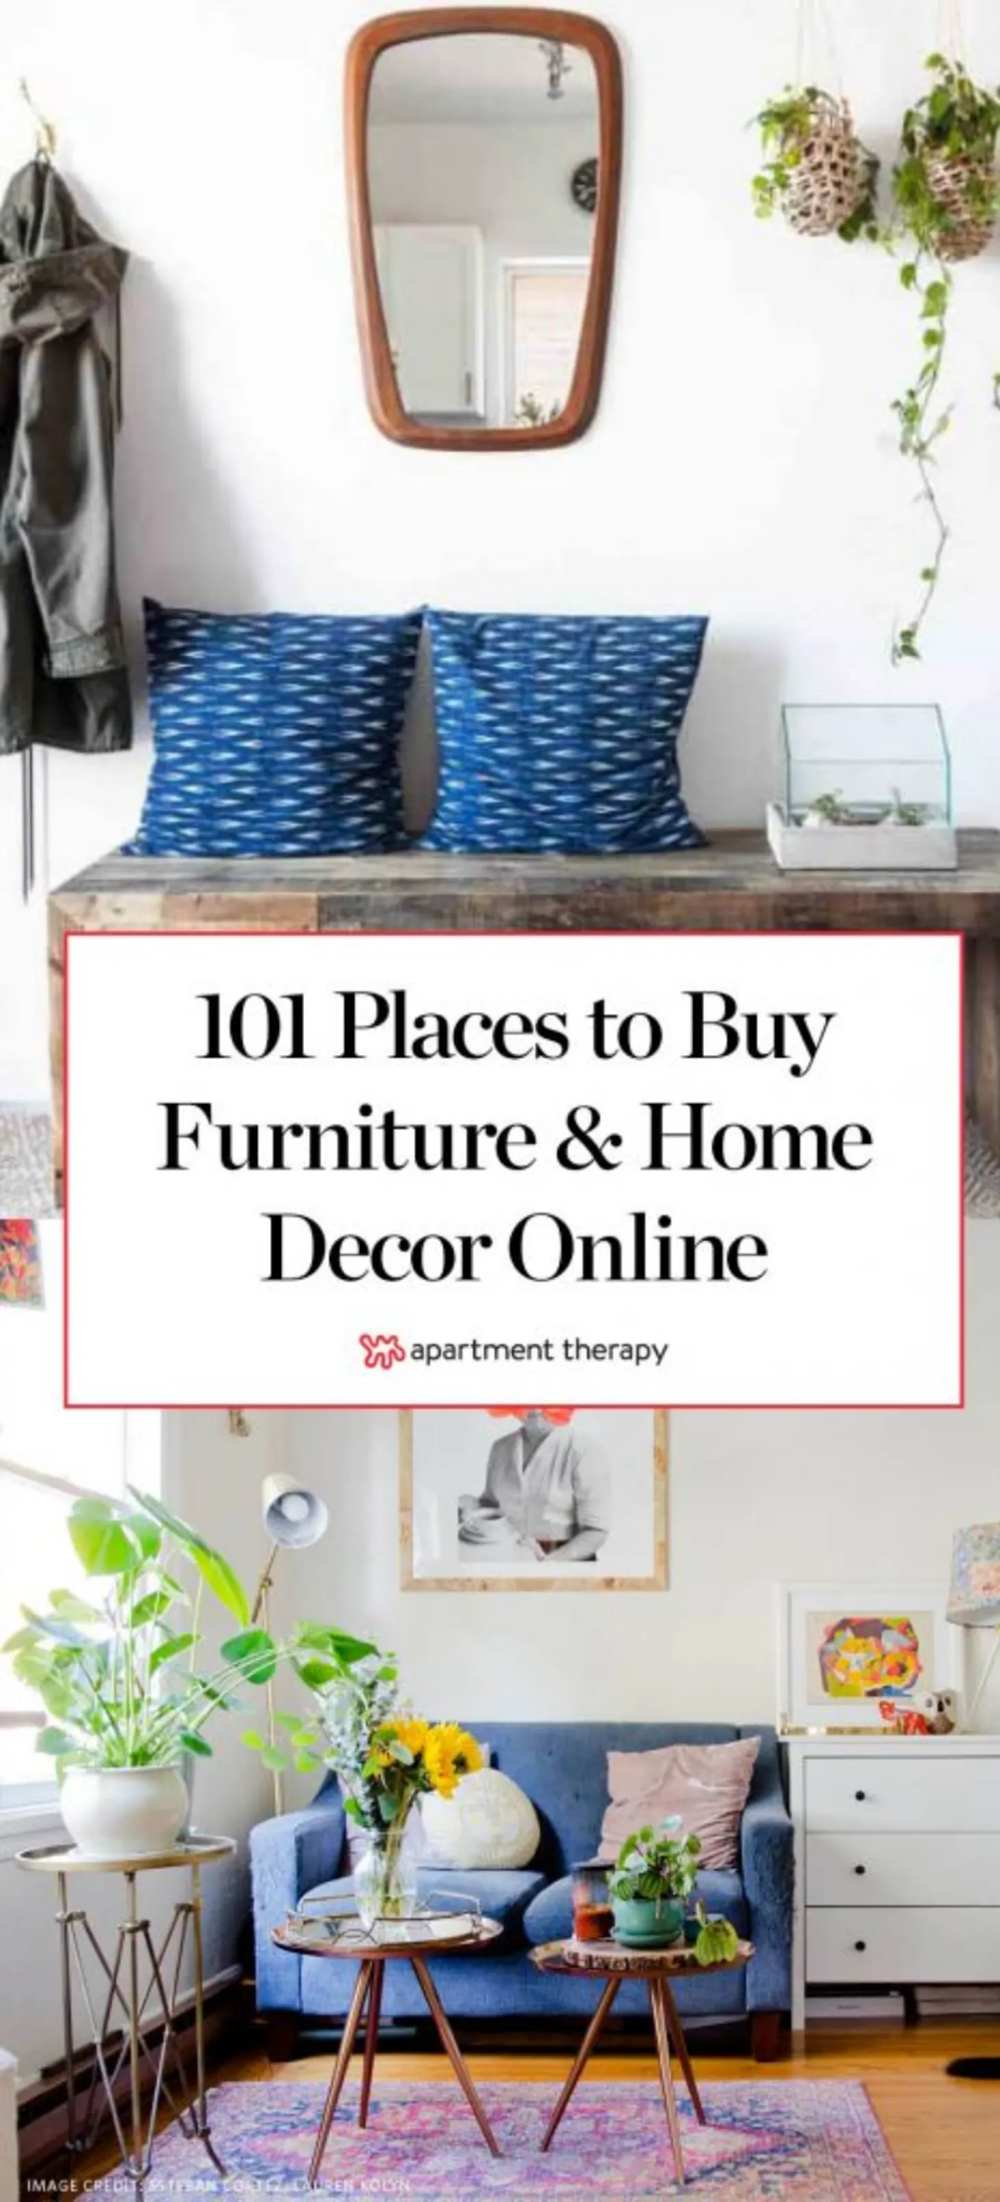 101 Places to Buy Furniture and Home Decor | Home decor online